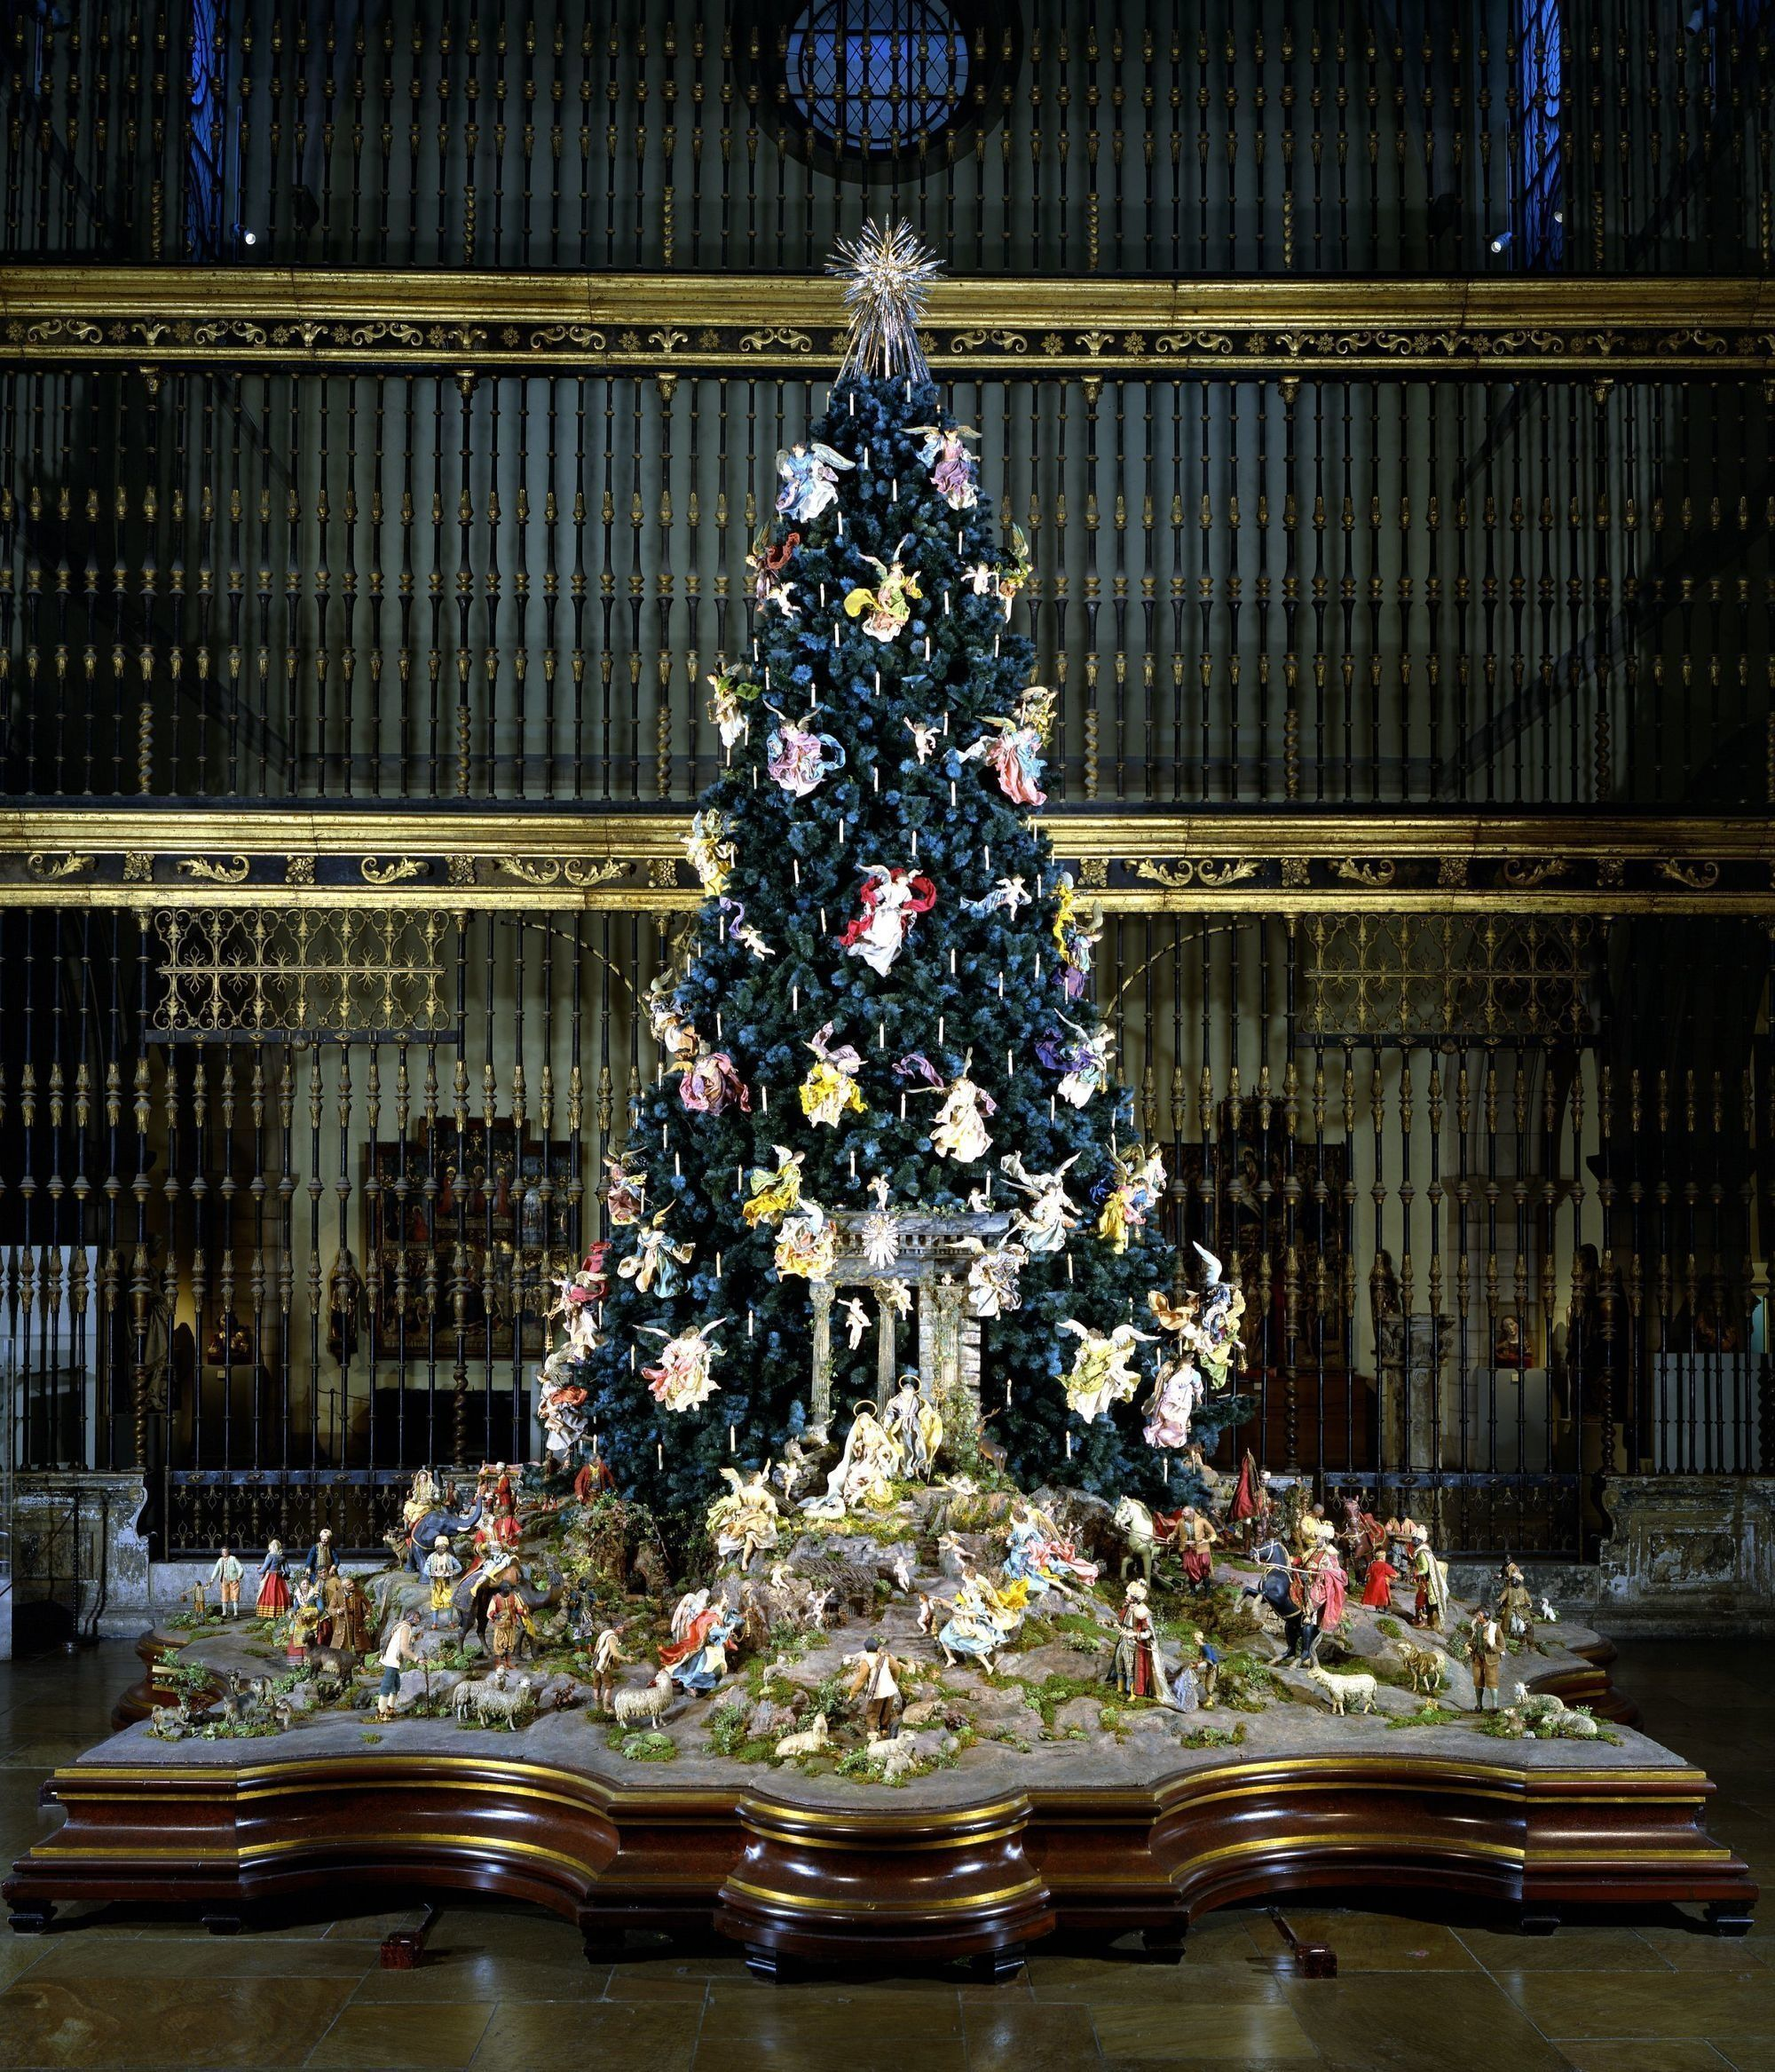 16 Of The Most Amazing Christmas Trees From Around The World Amazing Christmas Trees Christmas Tree New York Christmas